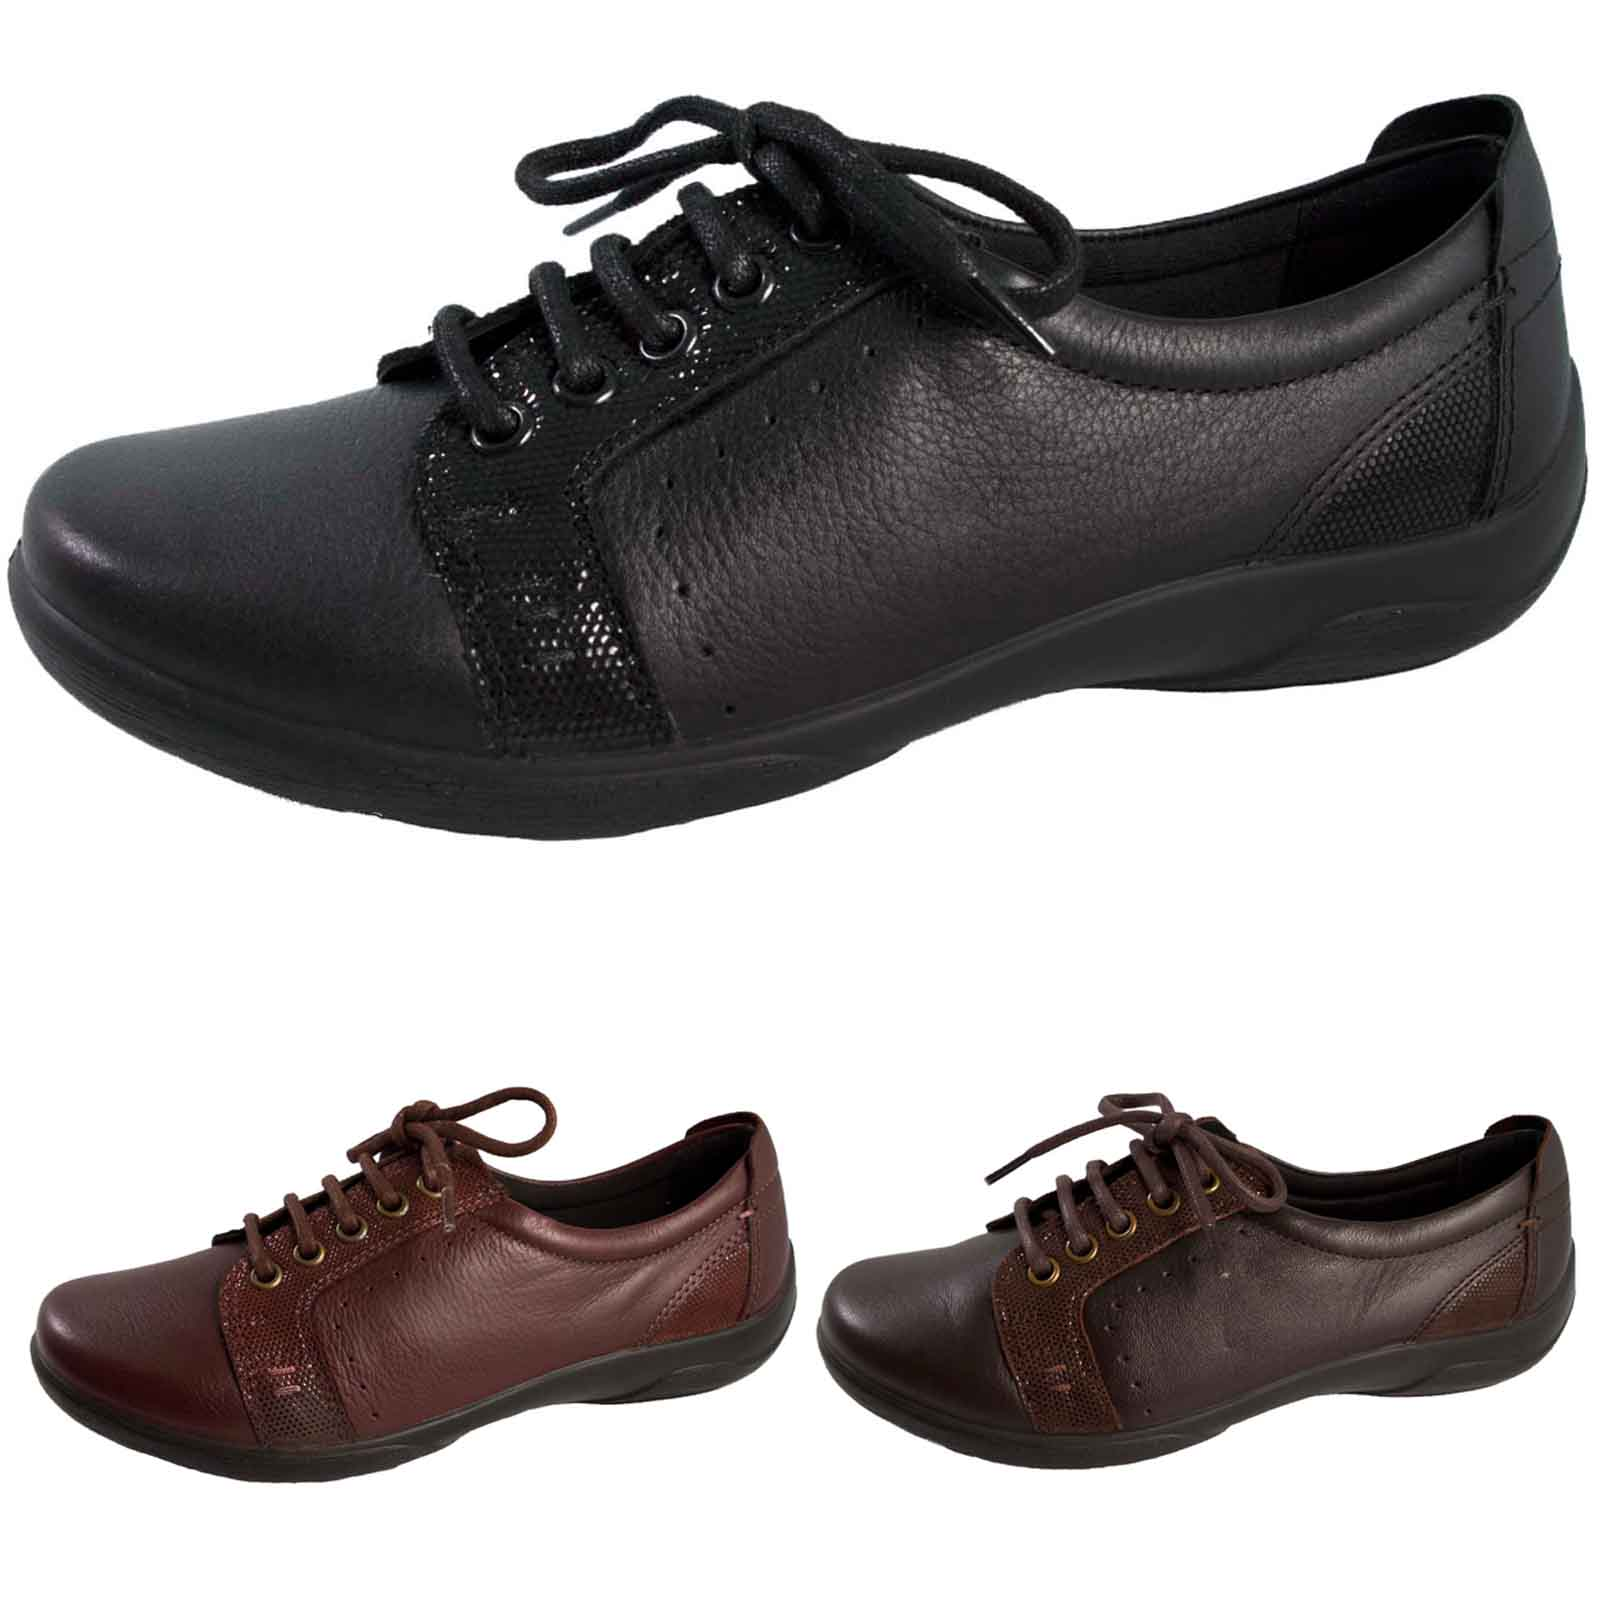 431aead8861b Padders Womens Leather Comfort Shoes Wide Fitting Lace Up Pumps Orthopedic  Size